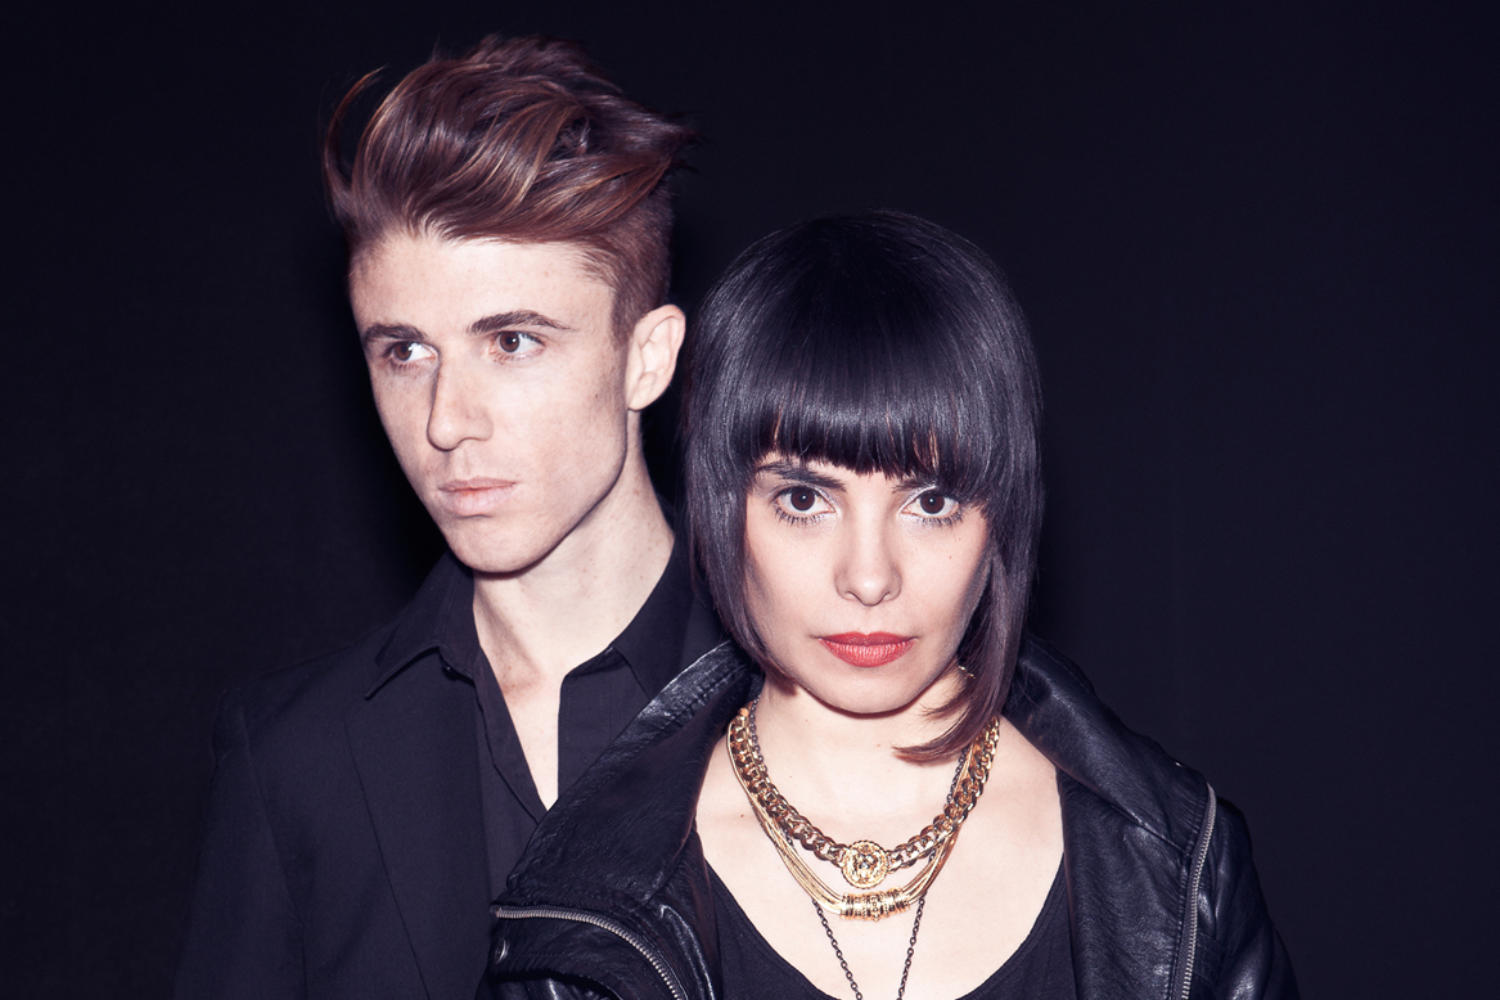 School Of Seven Bells plan to complete unfinished fourth album